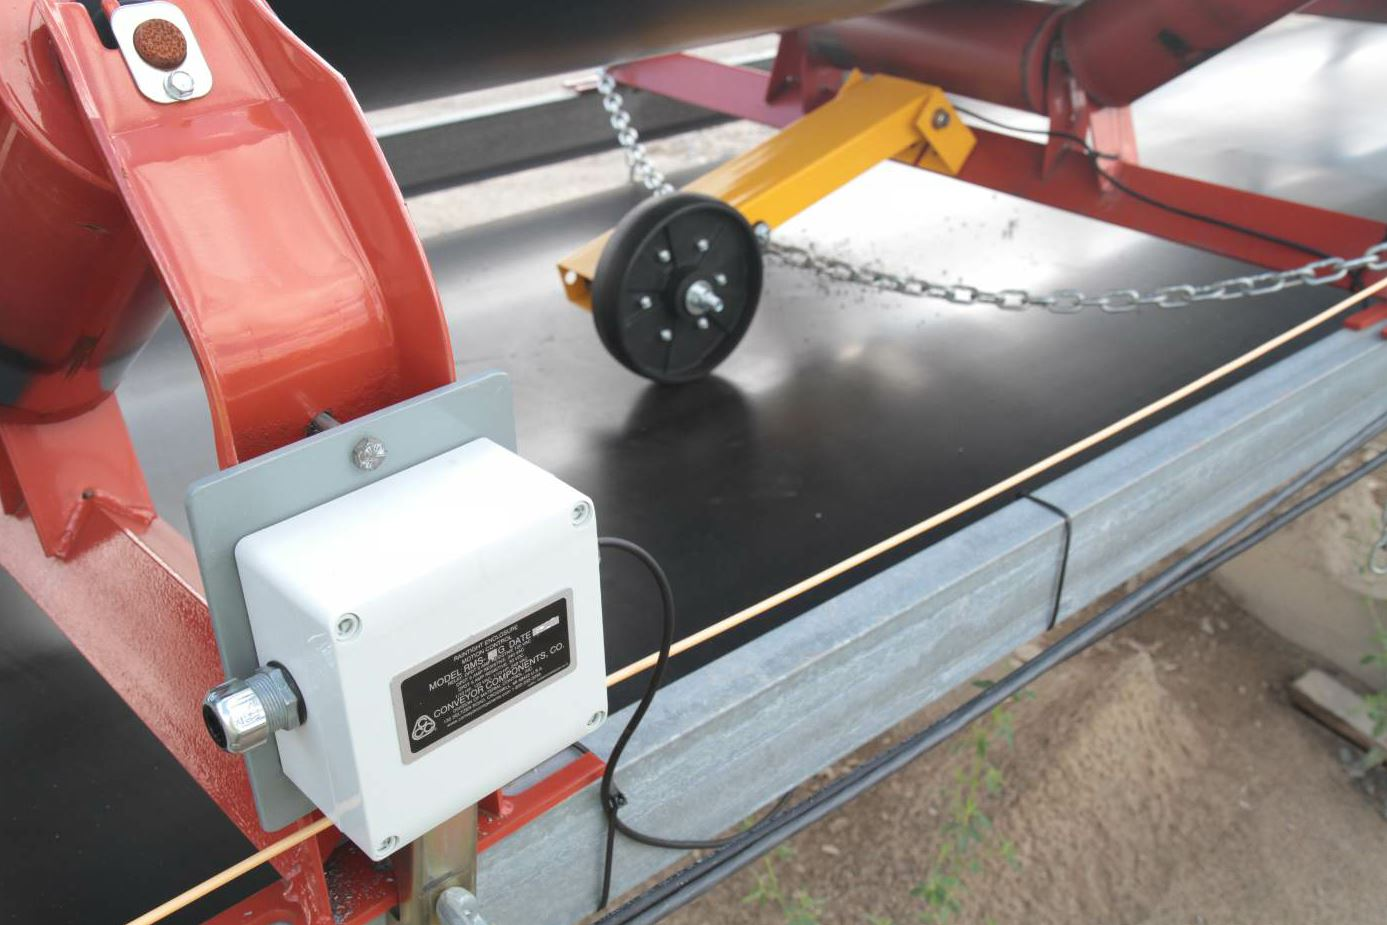 The belt speed detector from Conveyor Components indicates when a conveyor belt has slowed or stopped.